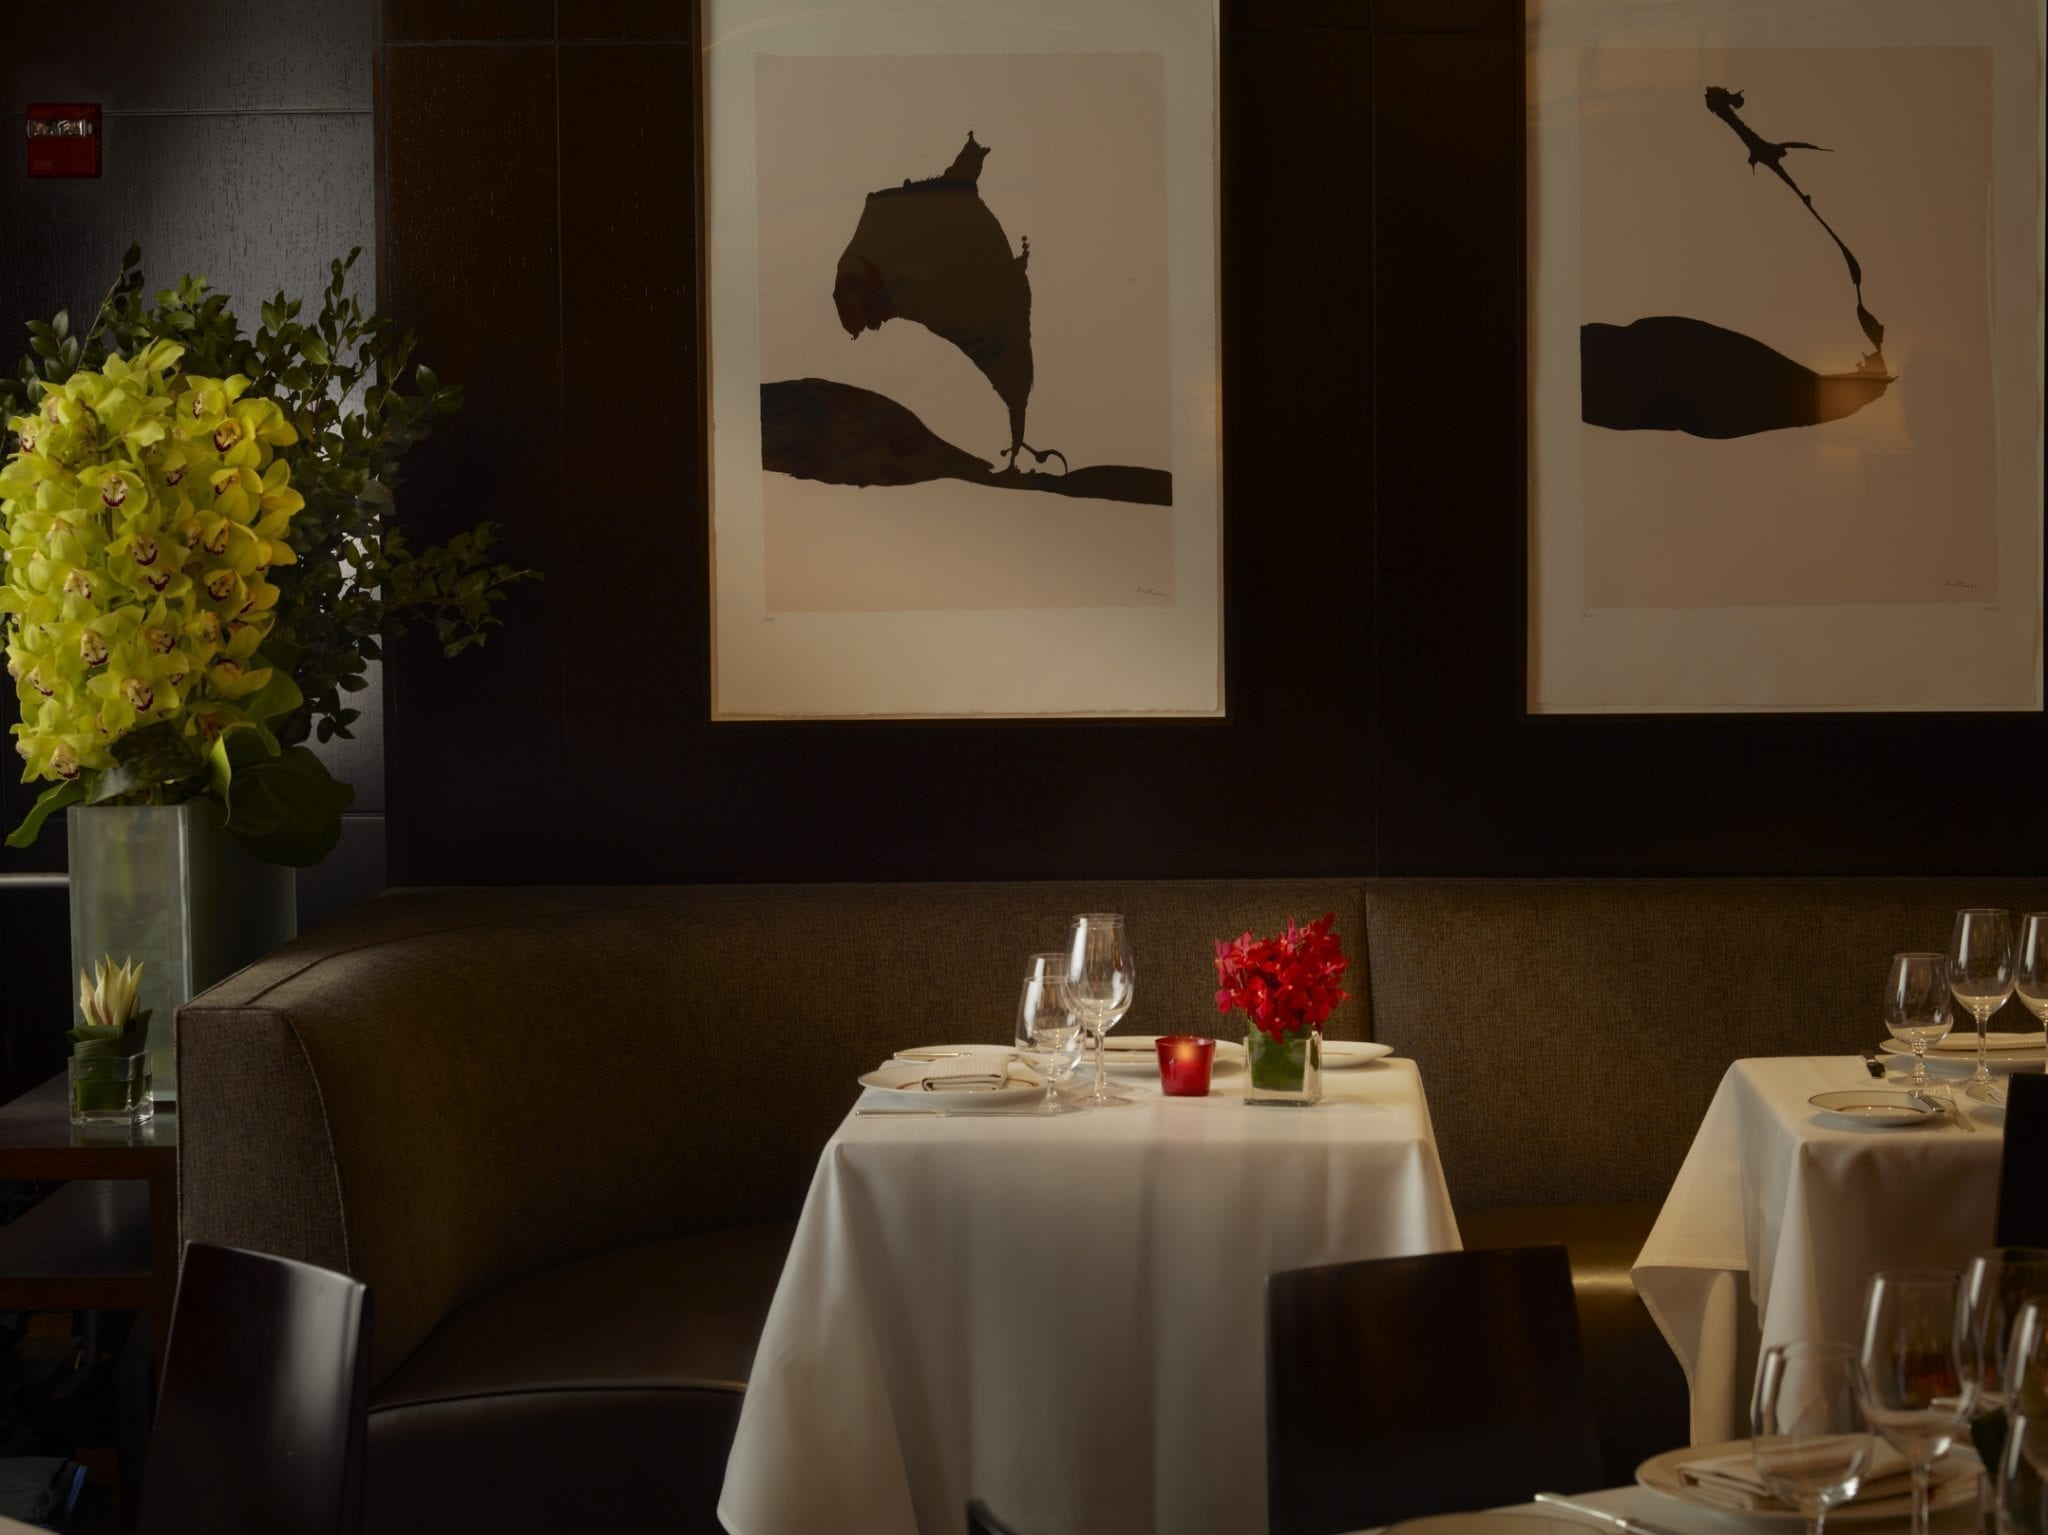 Close-up of a romantic table setting inside Cafe Boulud. The booth seats scoop behind the square table, the booth seat going all along the wall. The table has two empty goblets, placed beside a small flower pot and votive candle. Large paintings hang above, on the back wall.